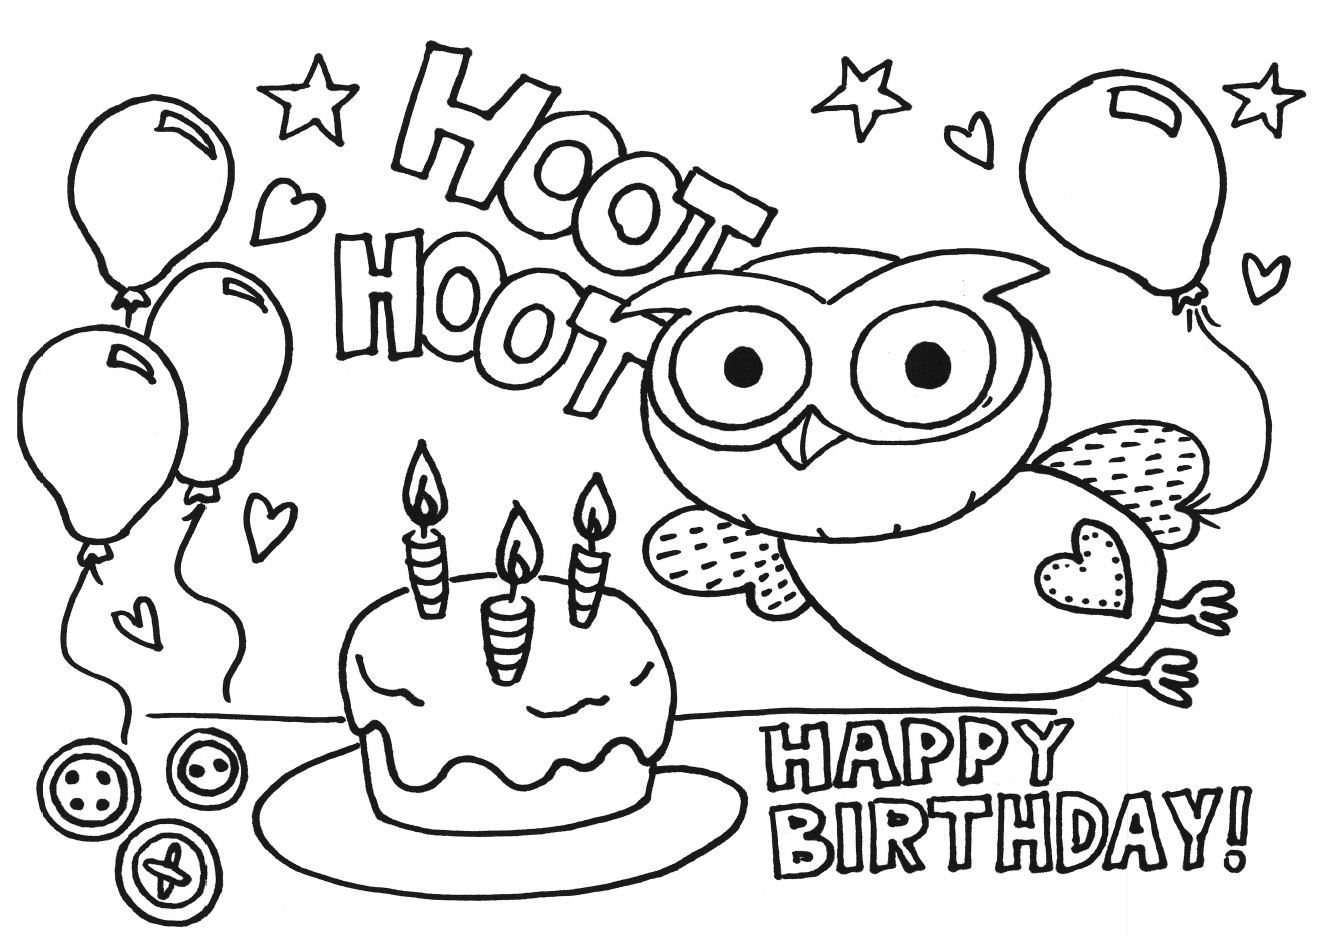 Milk Eyes Giggle And Hoot Free Download Colouring Pages Birthday Party Activities For Young Kids